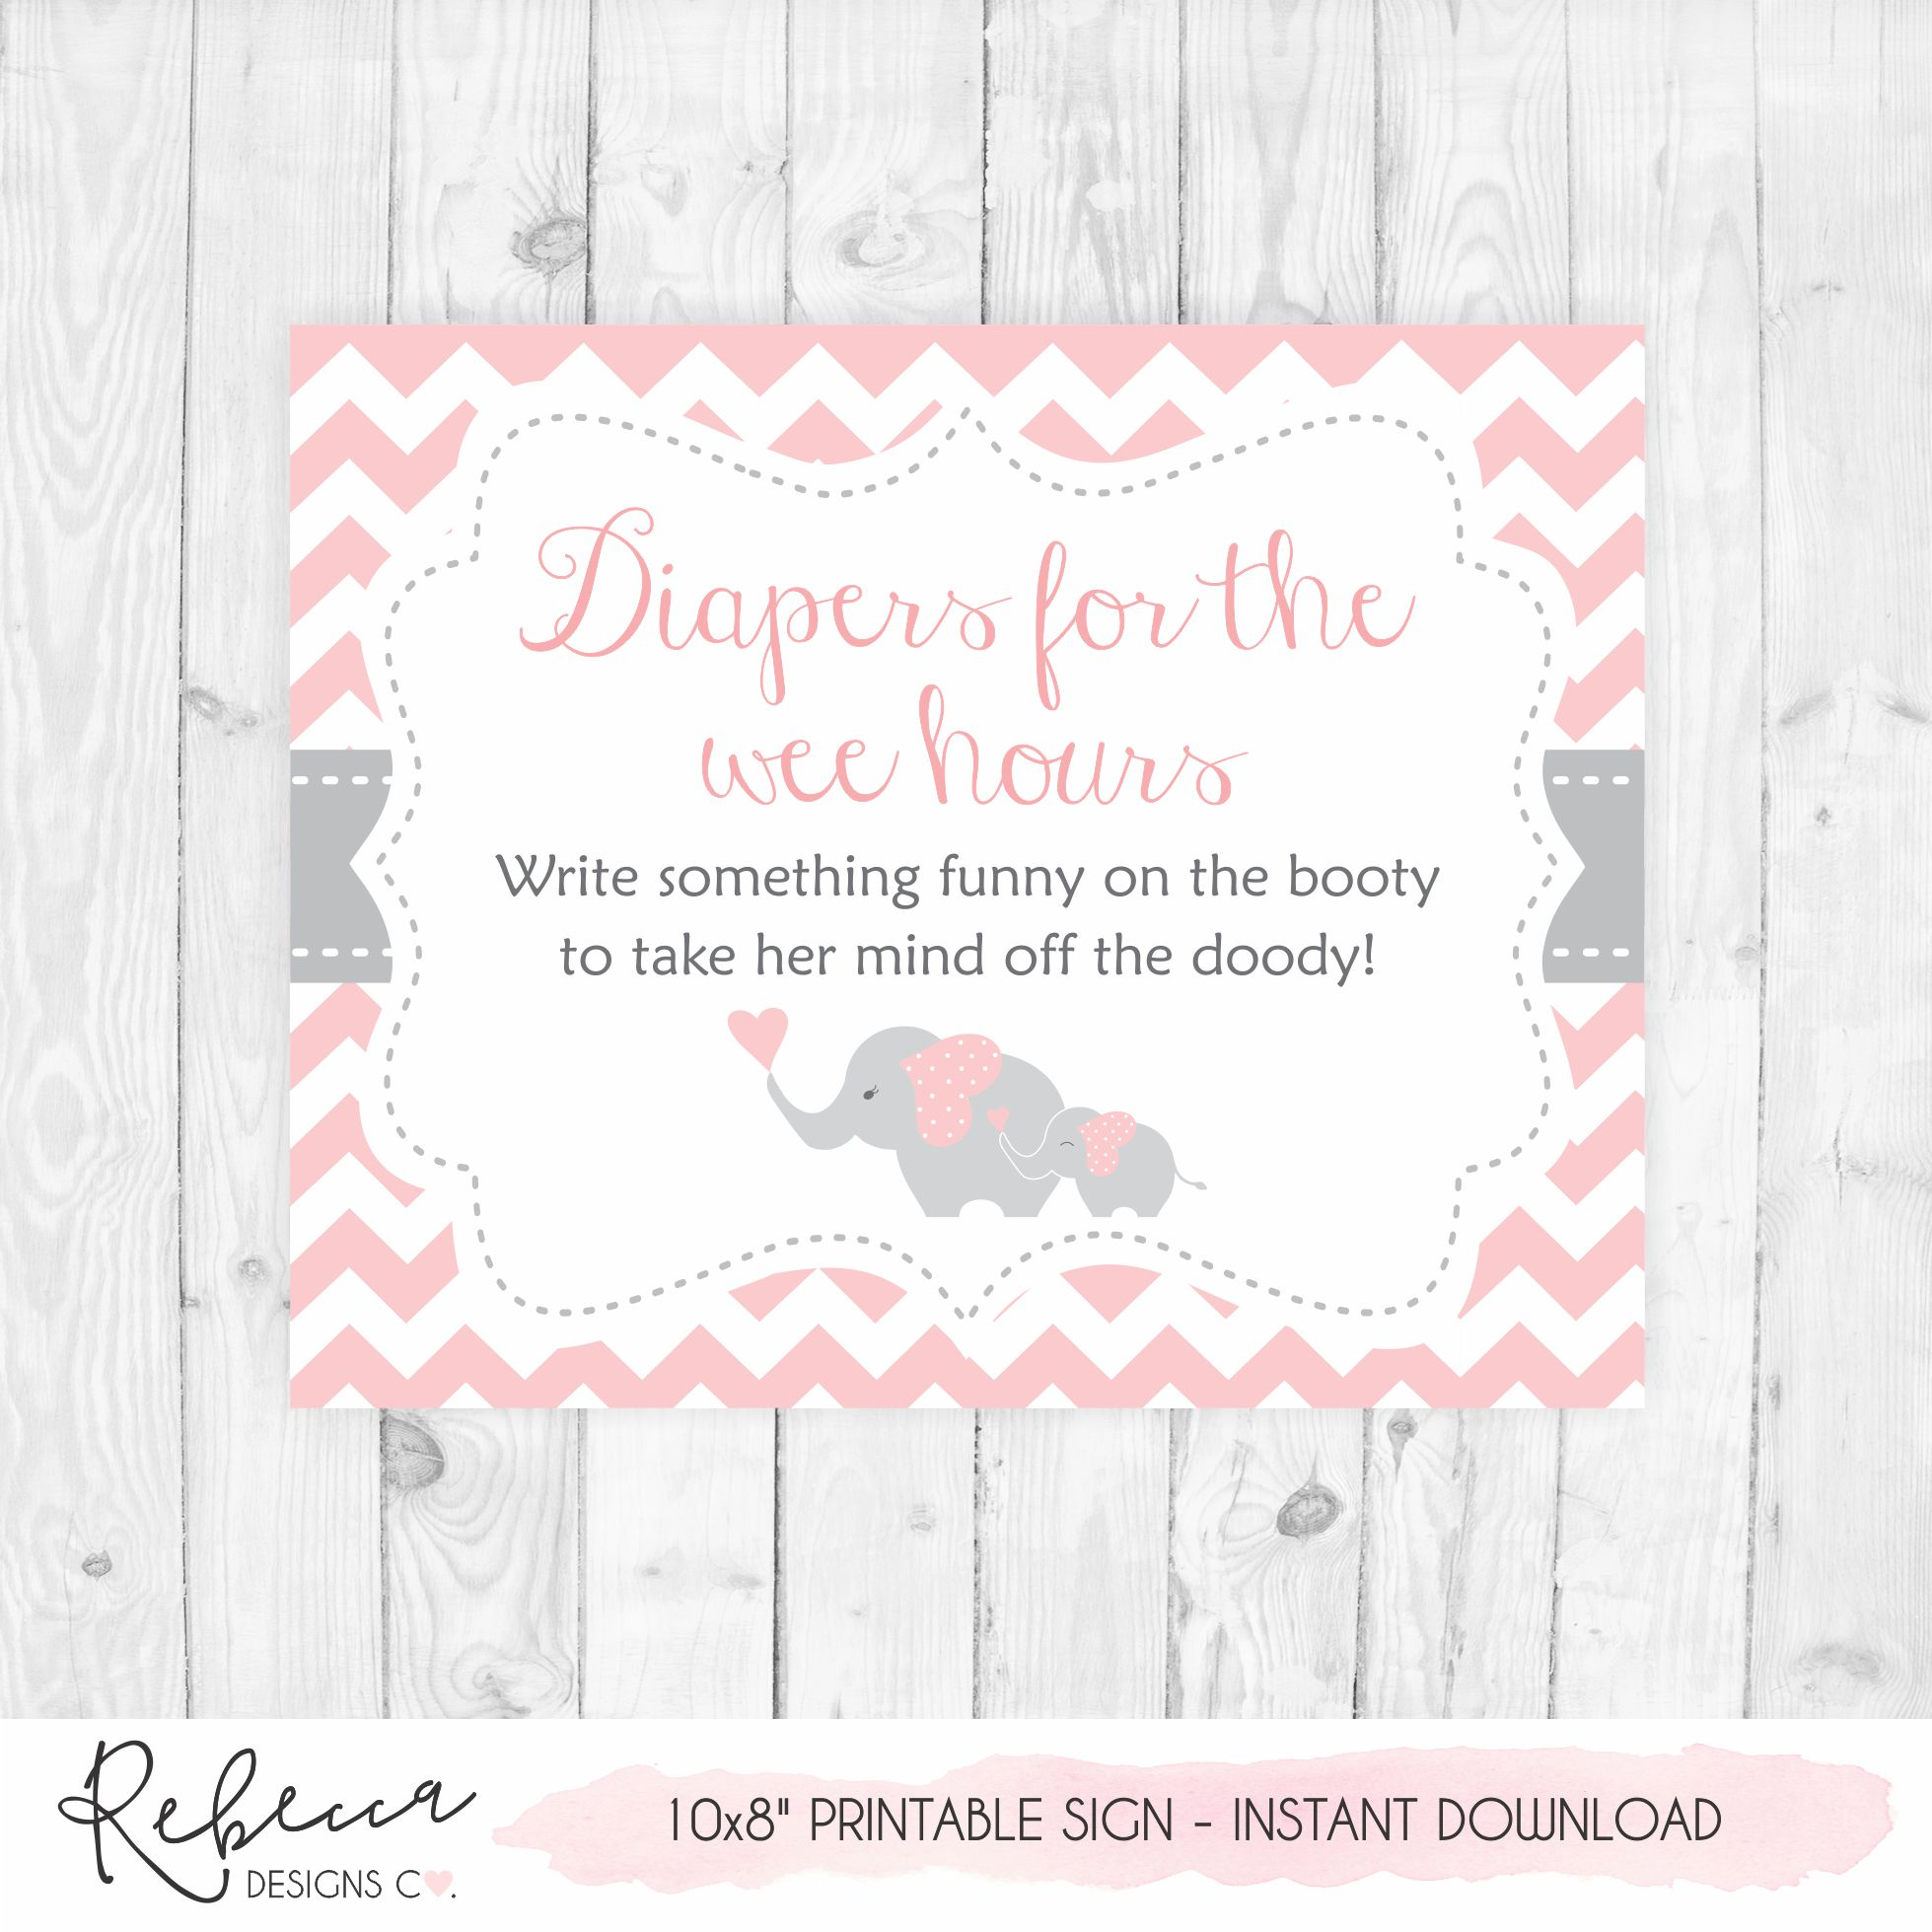 Diaper Thoughts Pink Baby Shower Game Late Night Diapers Game Printable Diapers For The Wee Hours Baby Shower Sign Elephant Baby Shower Pink Elephant Elephant Baby Shower Game